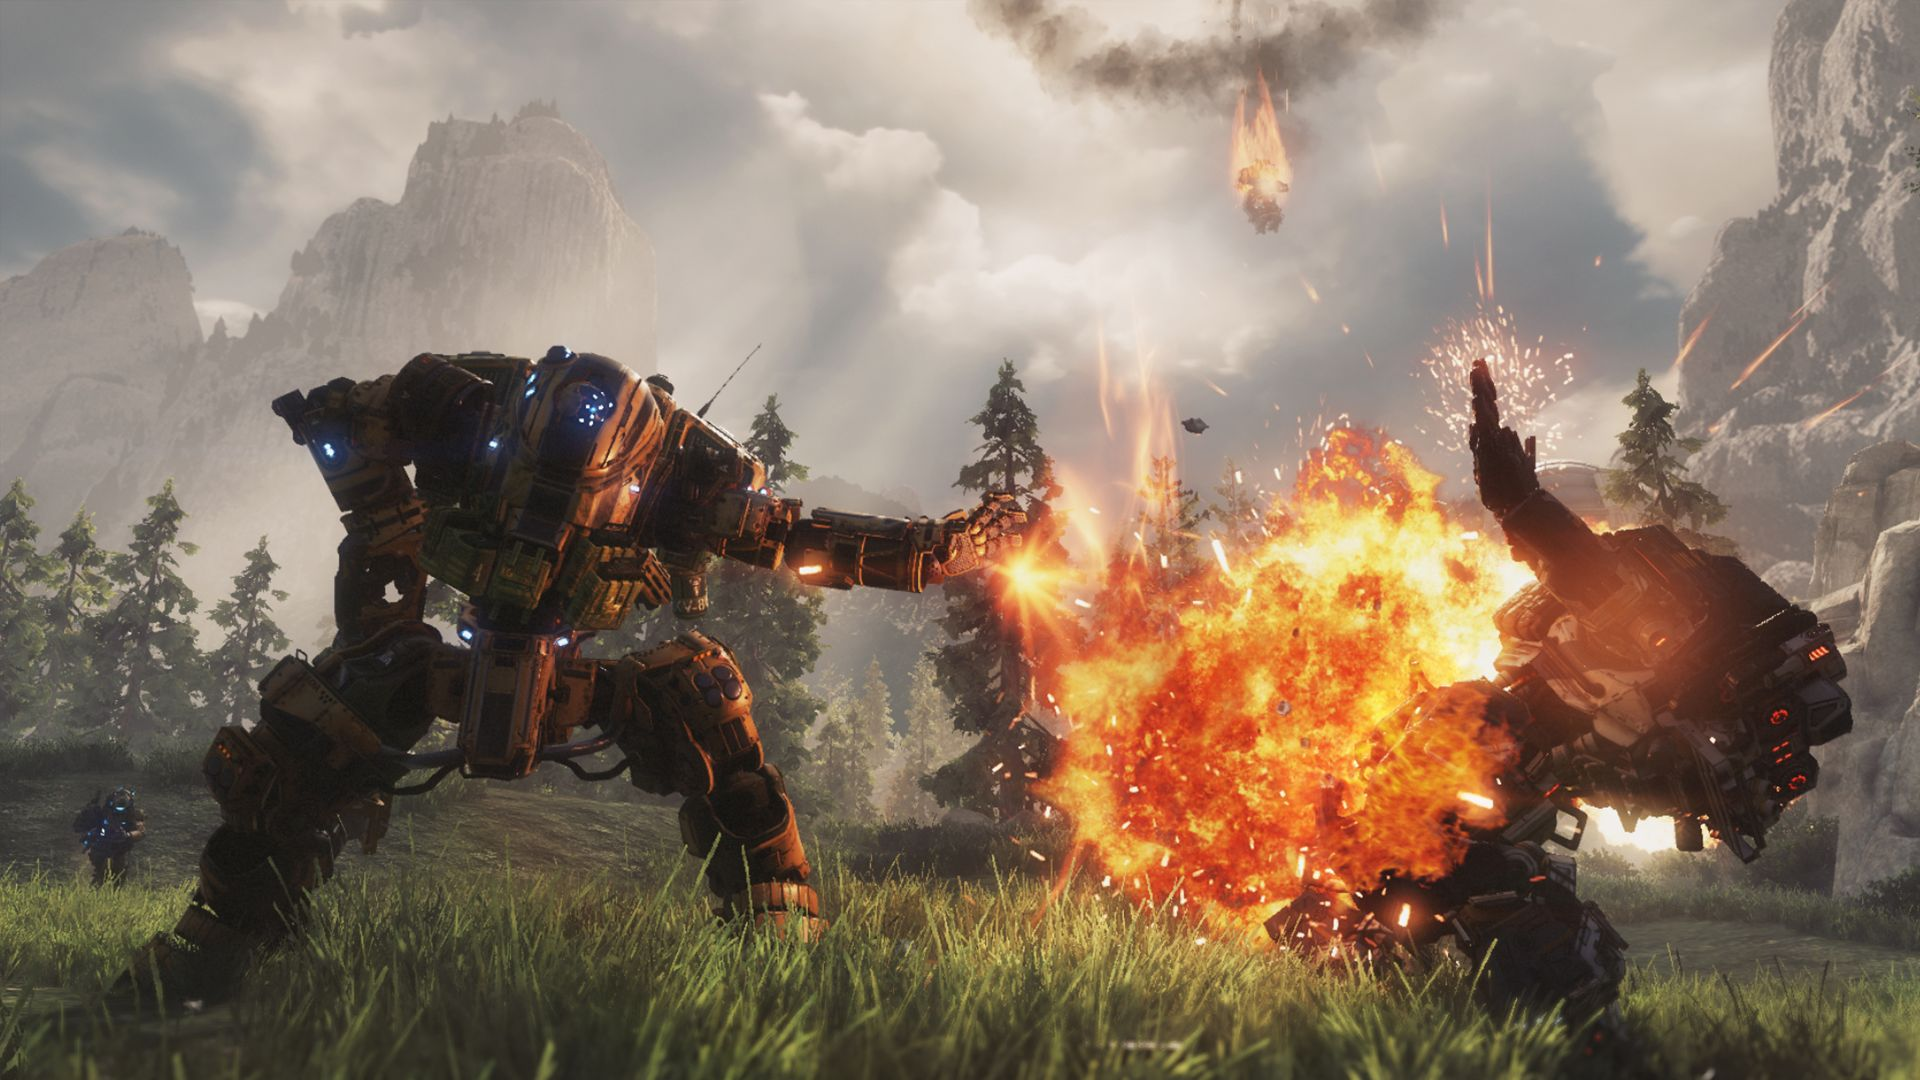 Titanfall 2 War Games update is live, and here are the patch notes